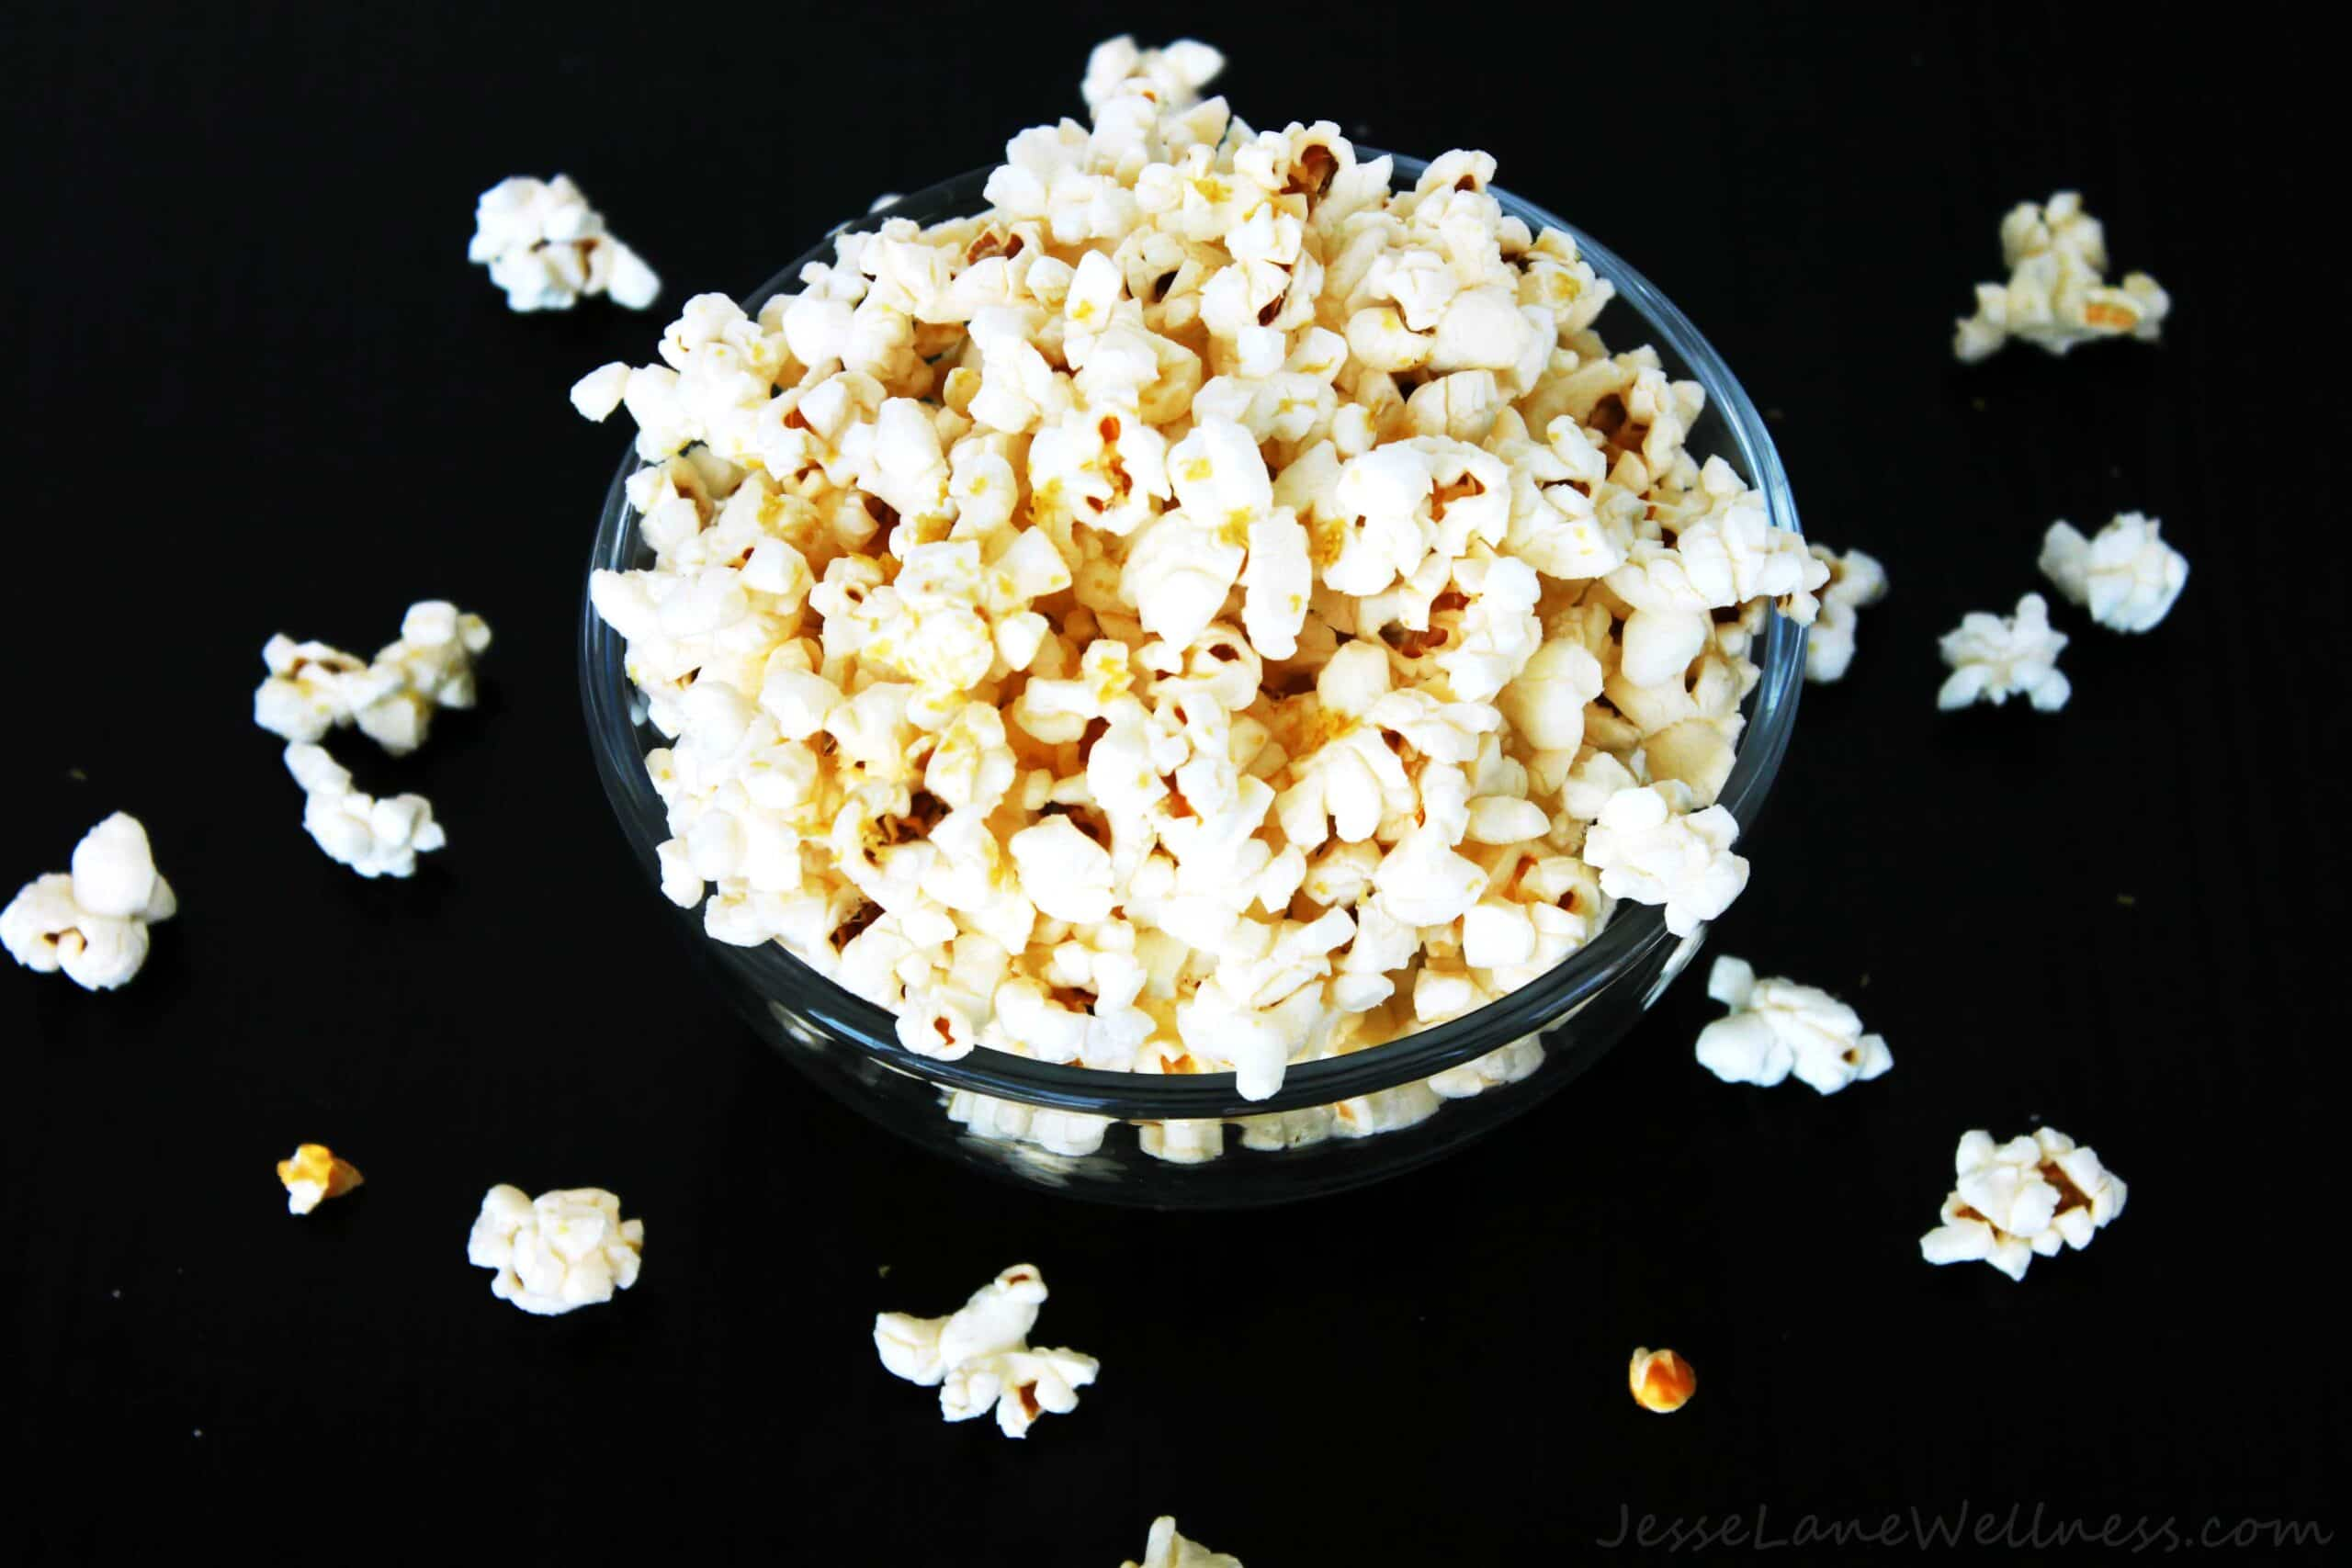 Cheesy Popcorn by @JesseLWellness #cheesy #popcorn